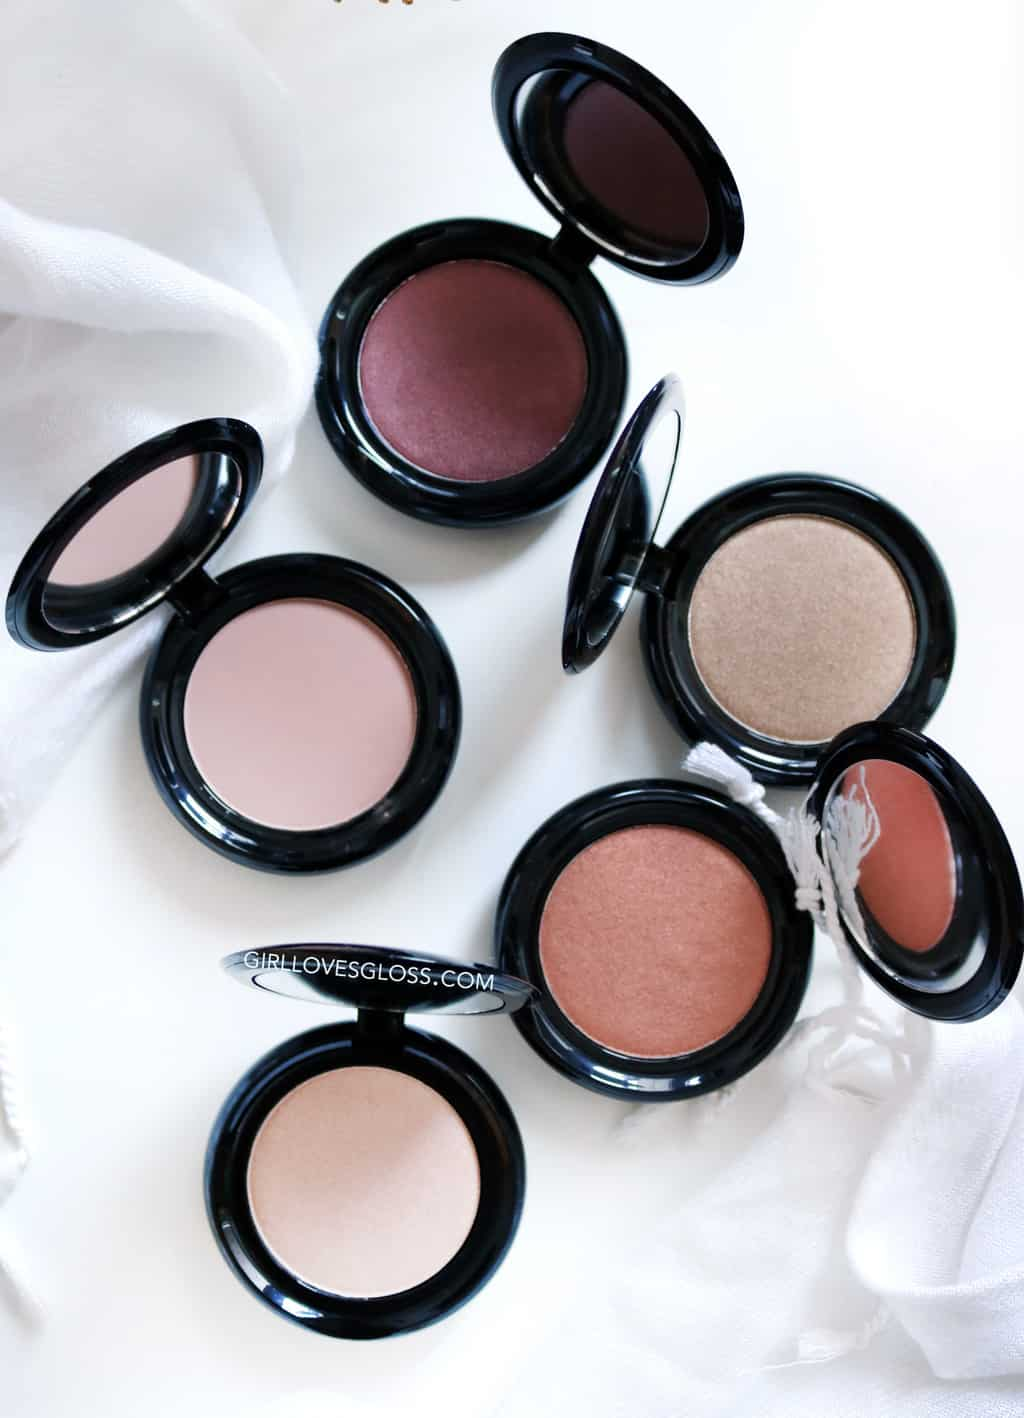 Marc Jacobs Beauty Omega Gel Shadows